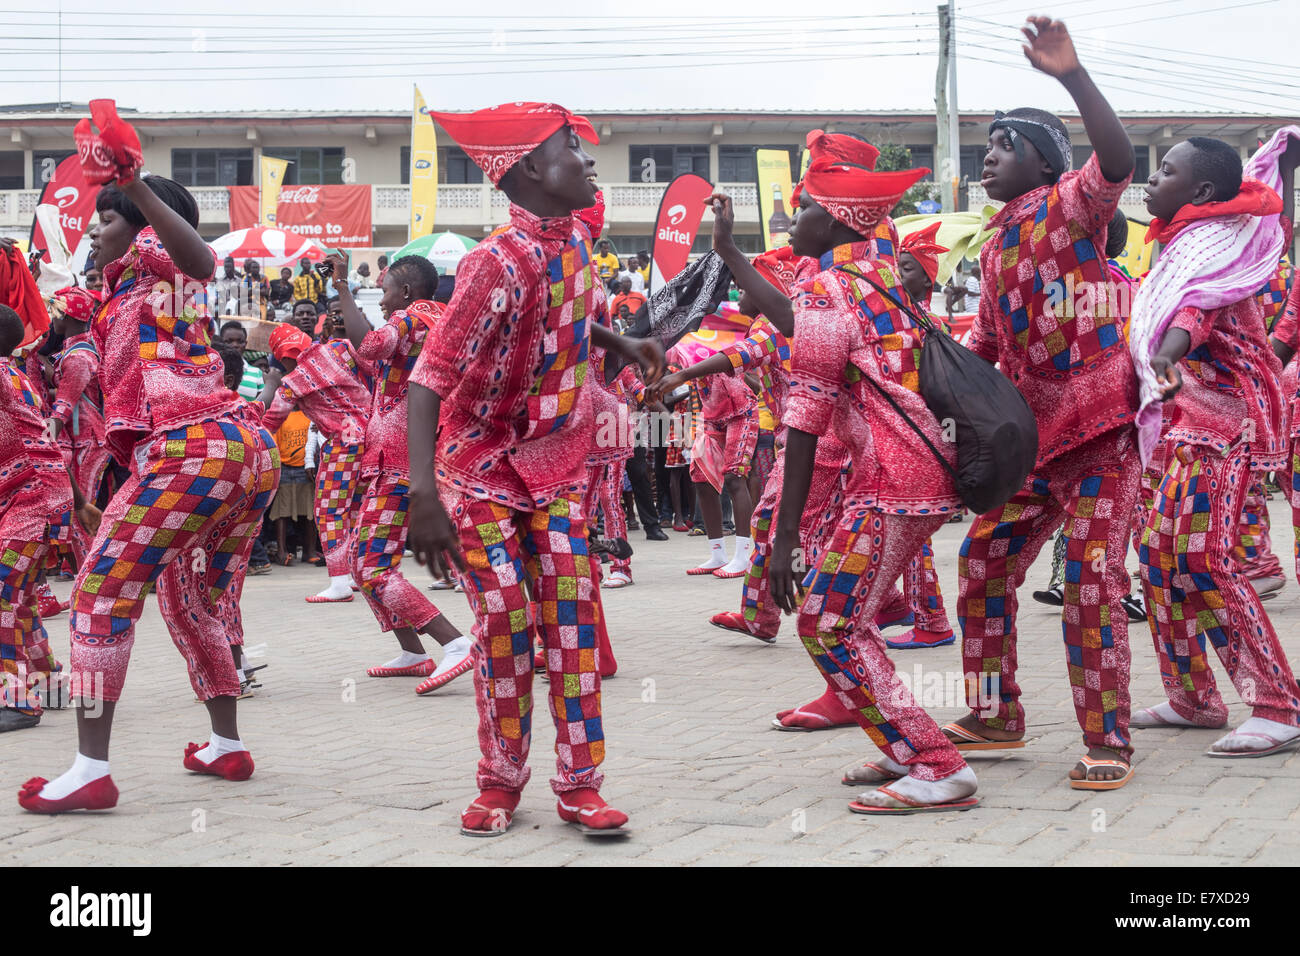 locals wearing new clothes and dancing in a group at fetu afayhe festival on cape coast - Stock Image